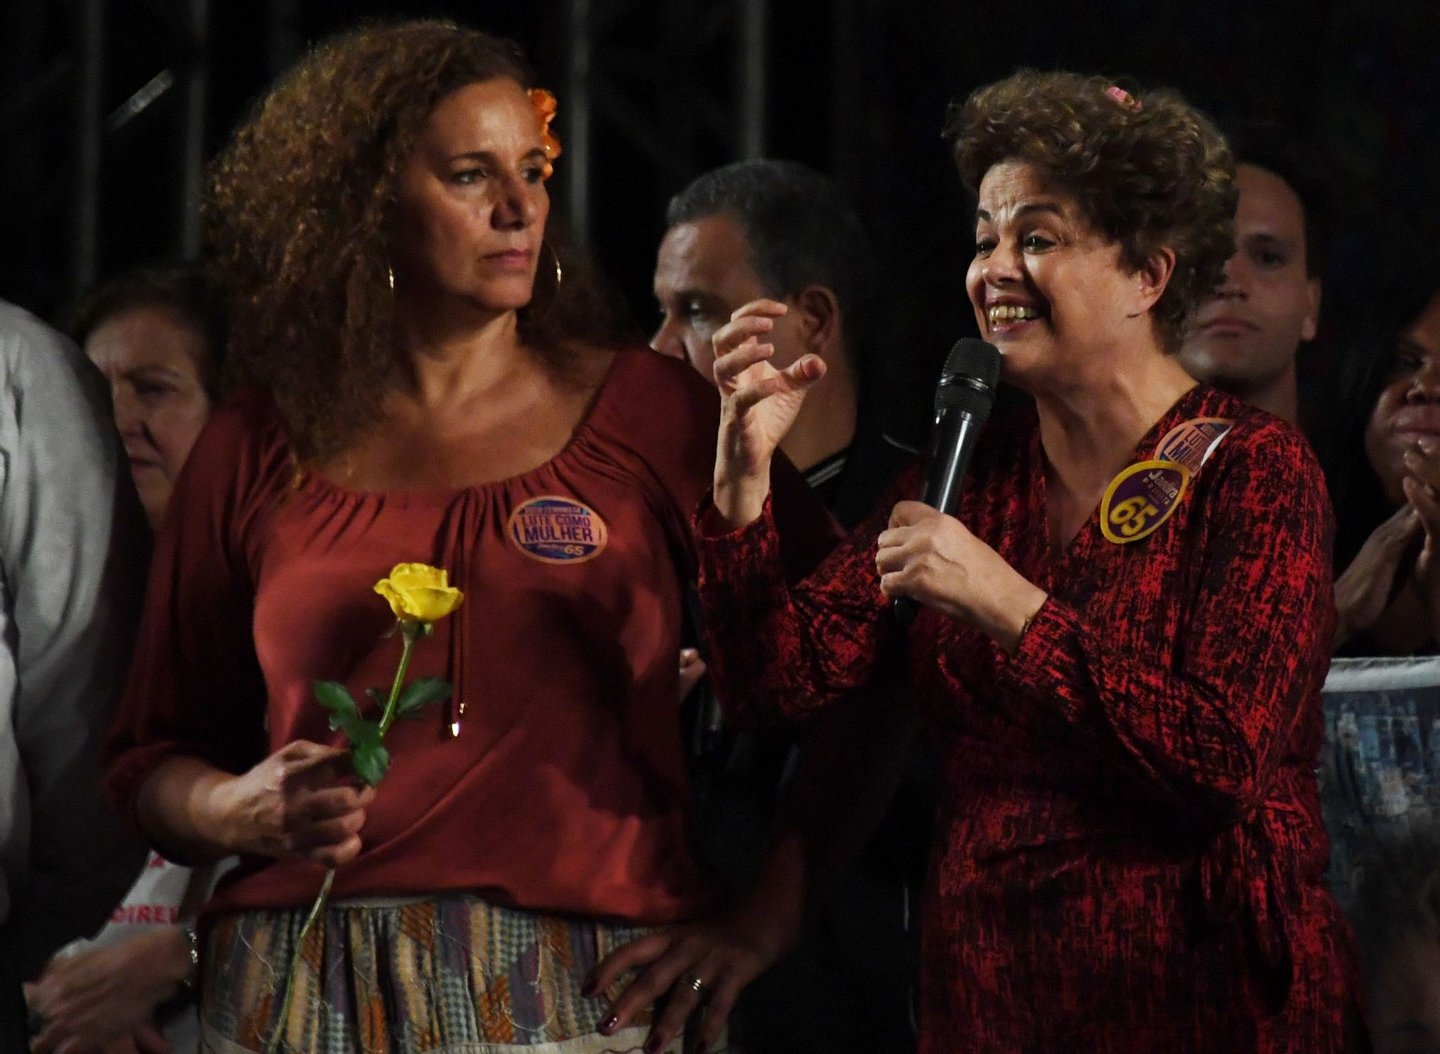 Former Brazilian president Dilma Rousseff (R) delivers a speech to supporters in Rio de Janeiro on September 21, 2016 during a campaign rally for Jandira Feghali (L), Communist Party candidate for mayor of Rio de Janeiro. / AFP / VANDERLEI ALMEIDA (Photo credit should read VANDERLEI ALMEIDA/AFP/Getty Images)